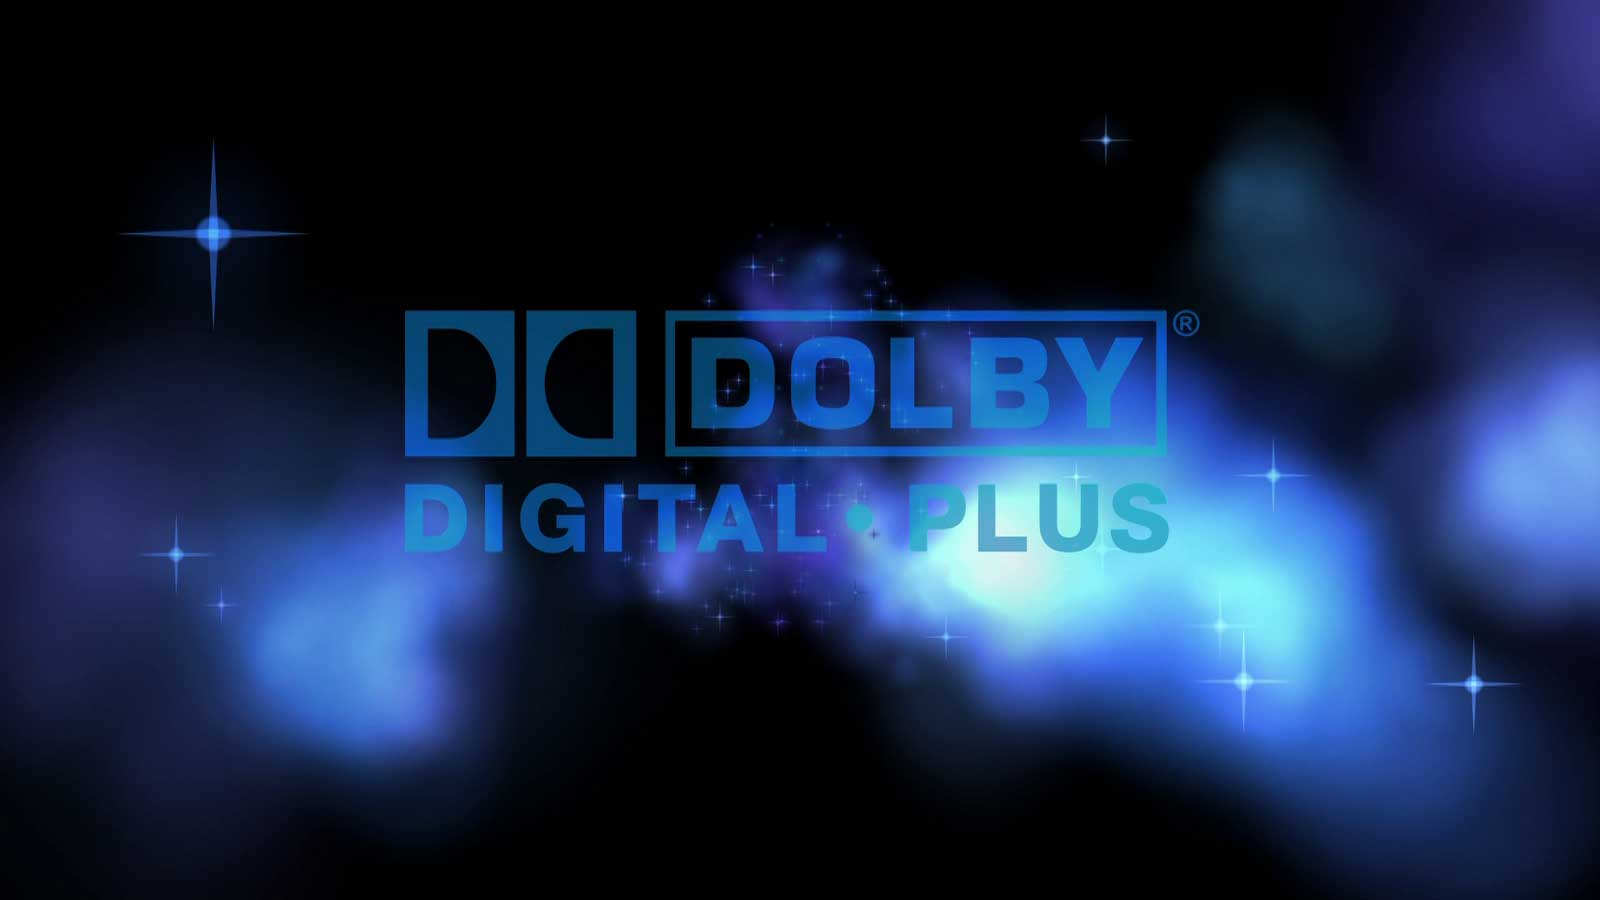 dolby_digital_plus.jpg